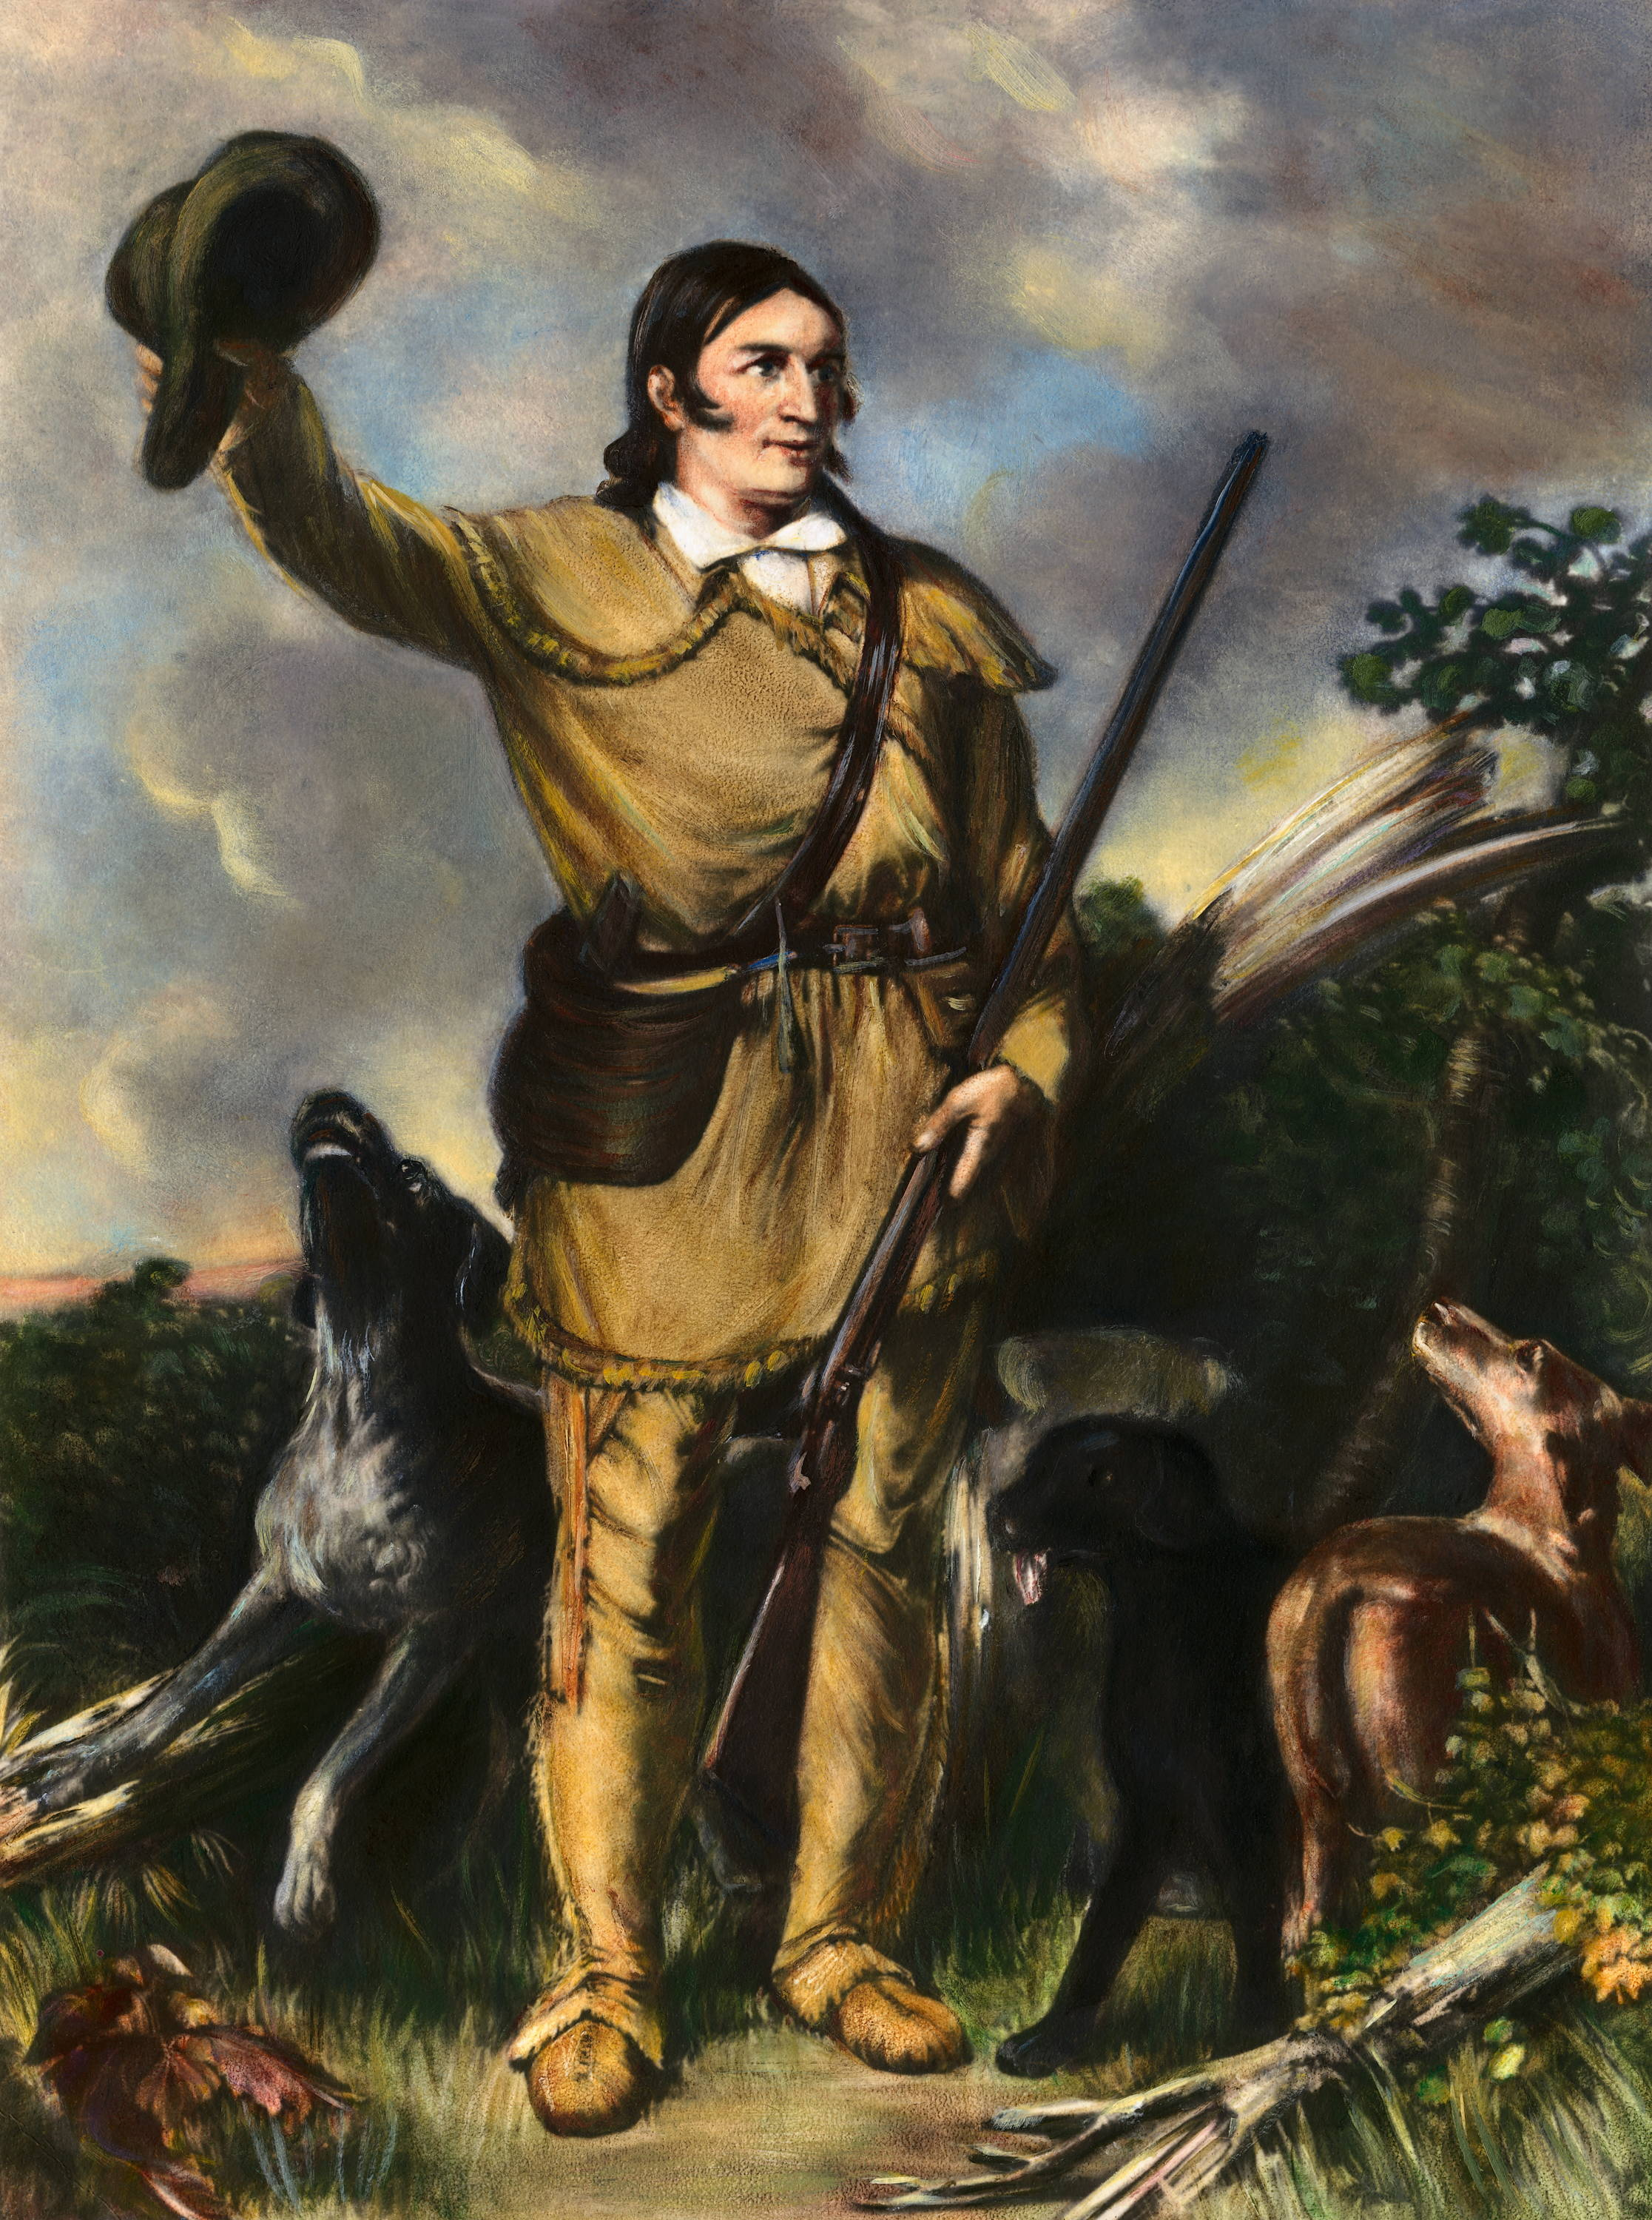 ILlustration of Davey Crockett holding a pistol and surrounded by animals